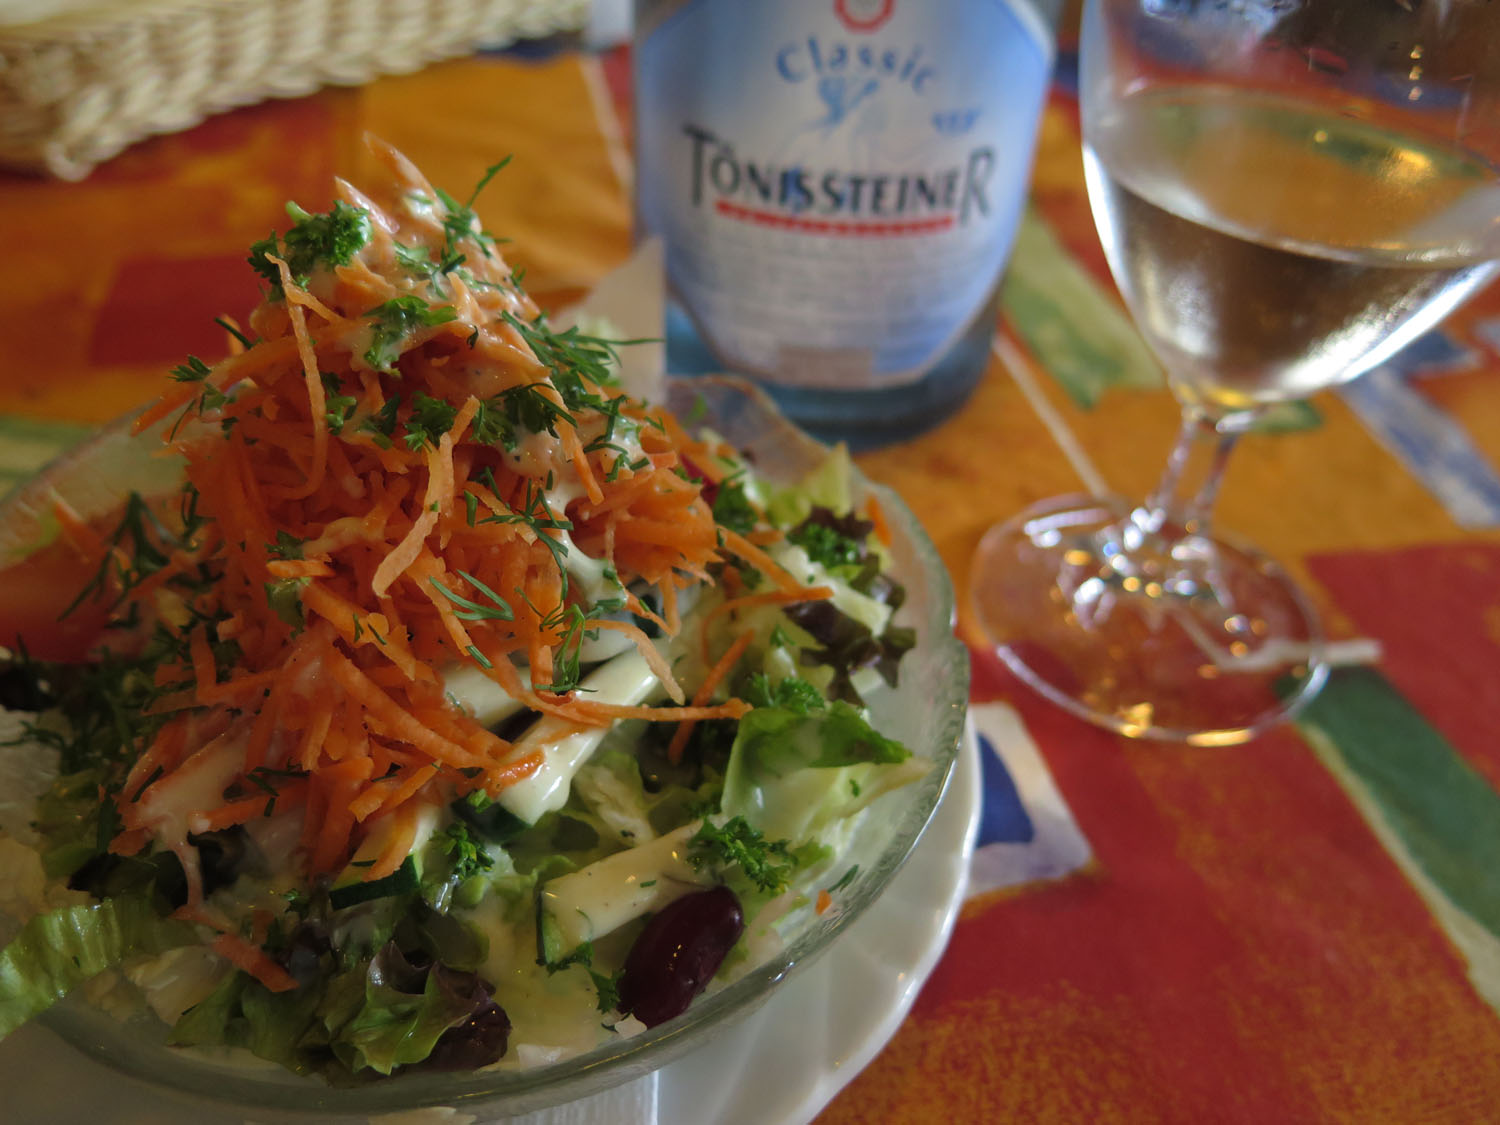 Germany-Rhine-River-Valley-Food-And-Drink-Salad